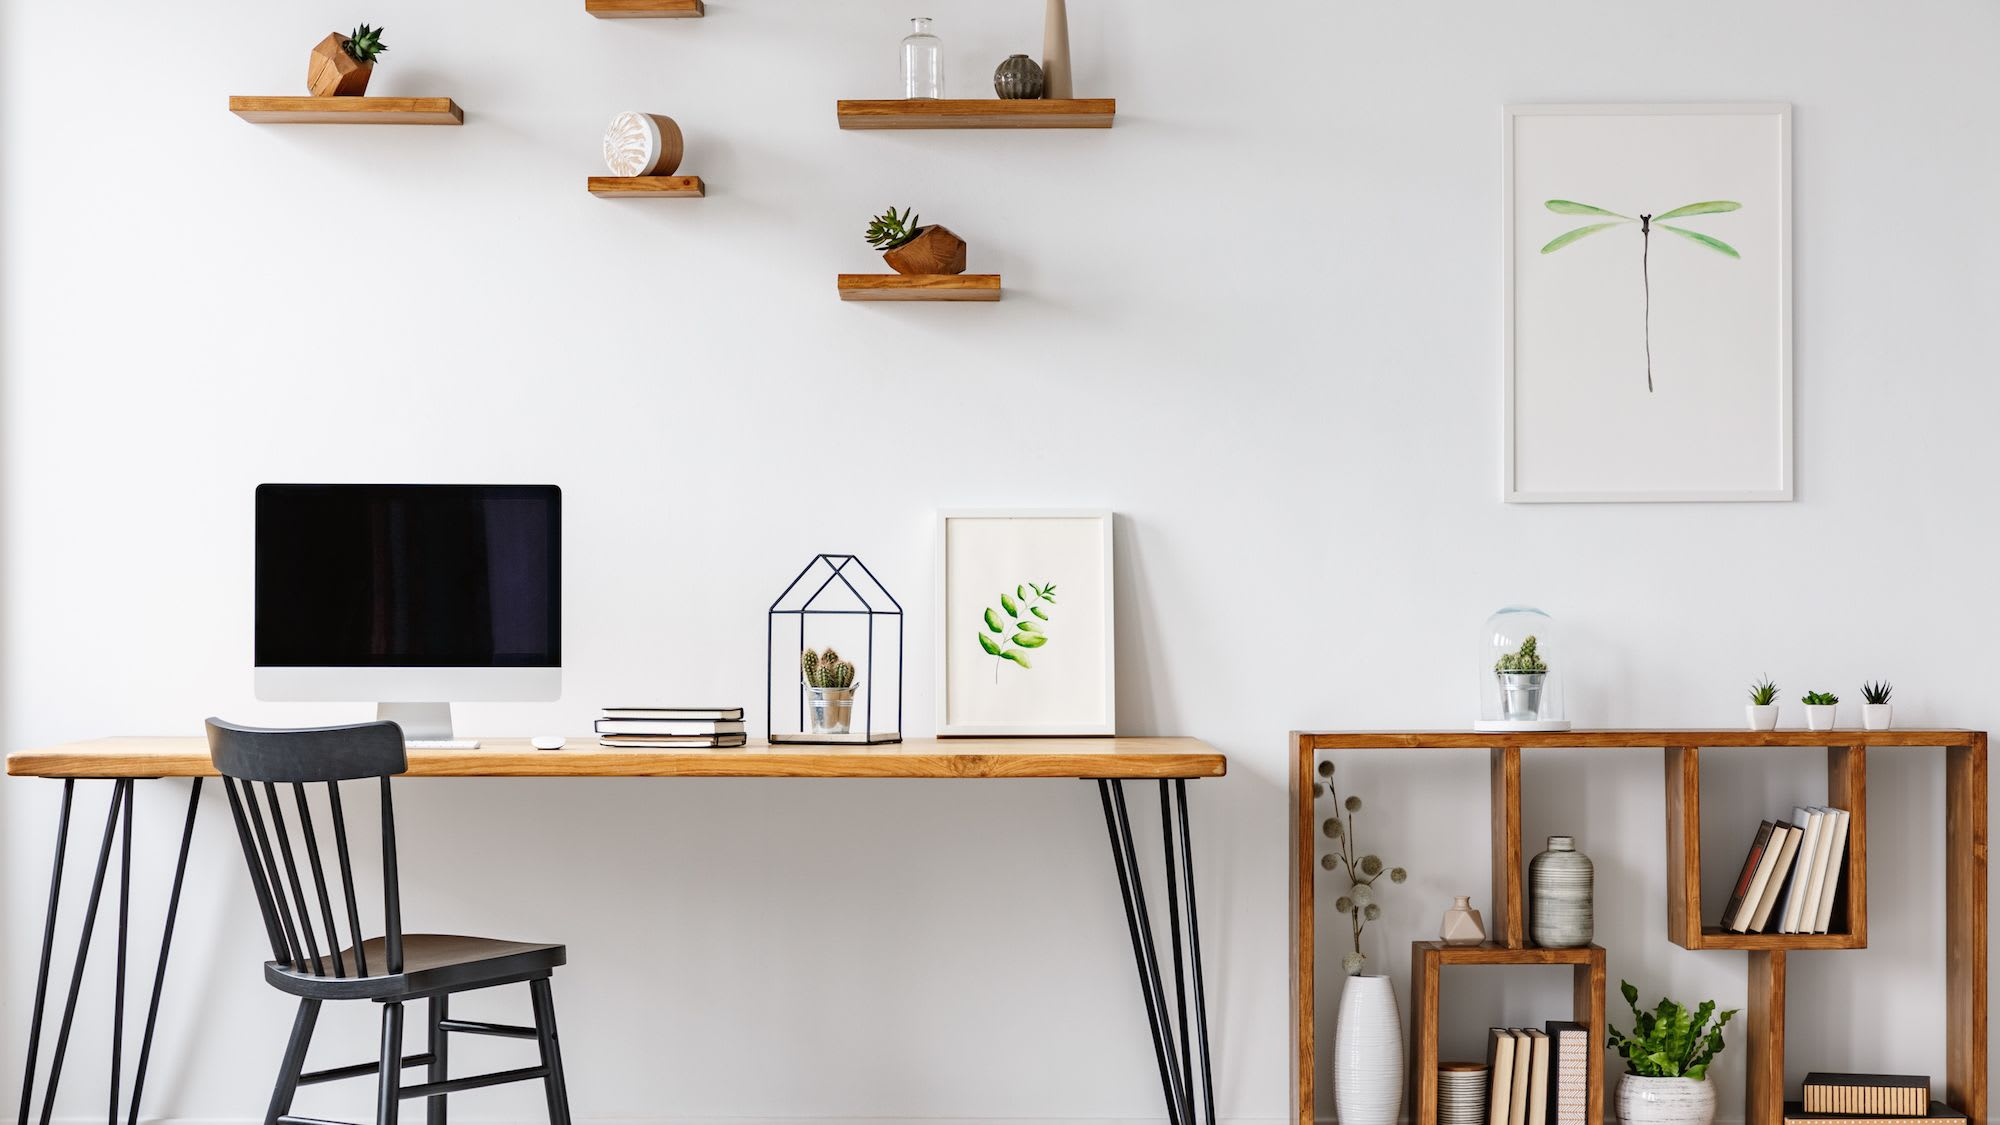 9 Best Office Wall Decor Ideas And Where To Buy Fairygodboss